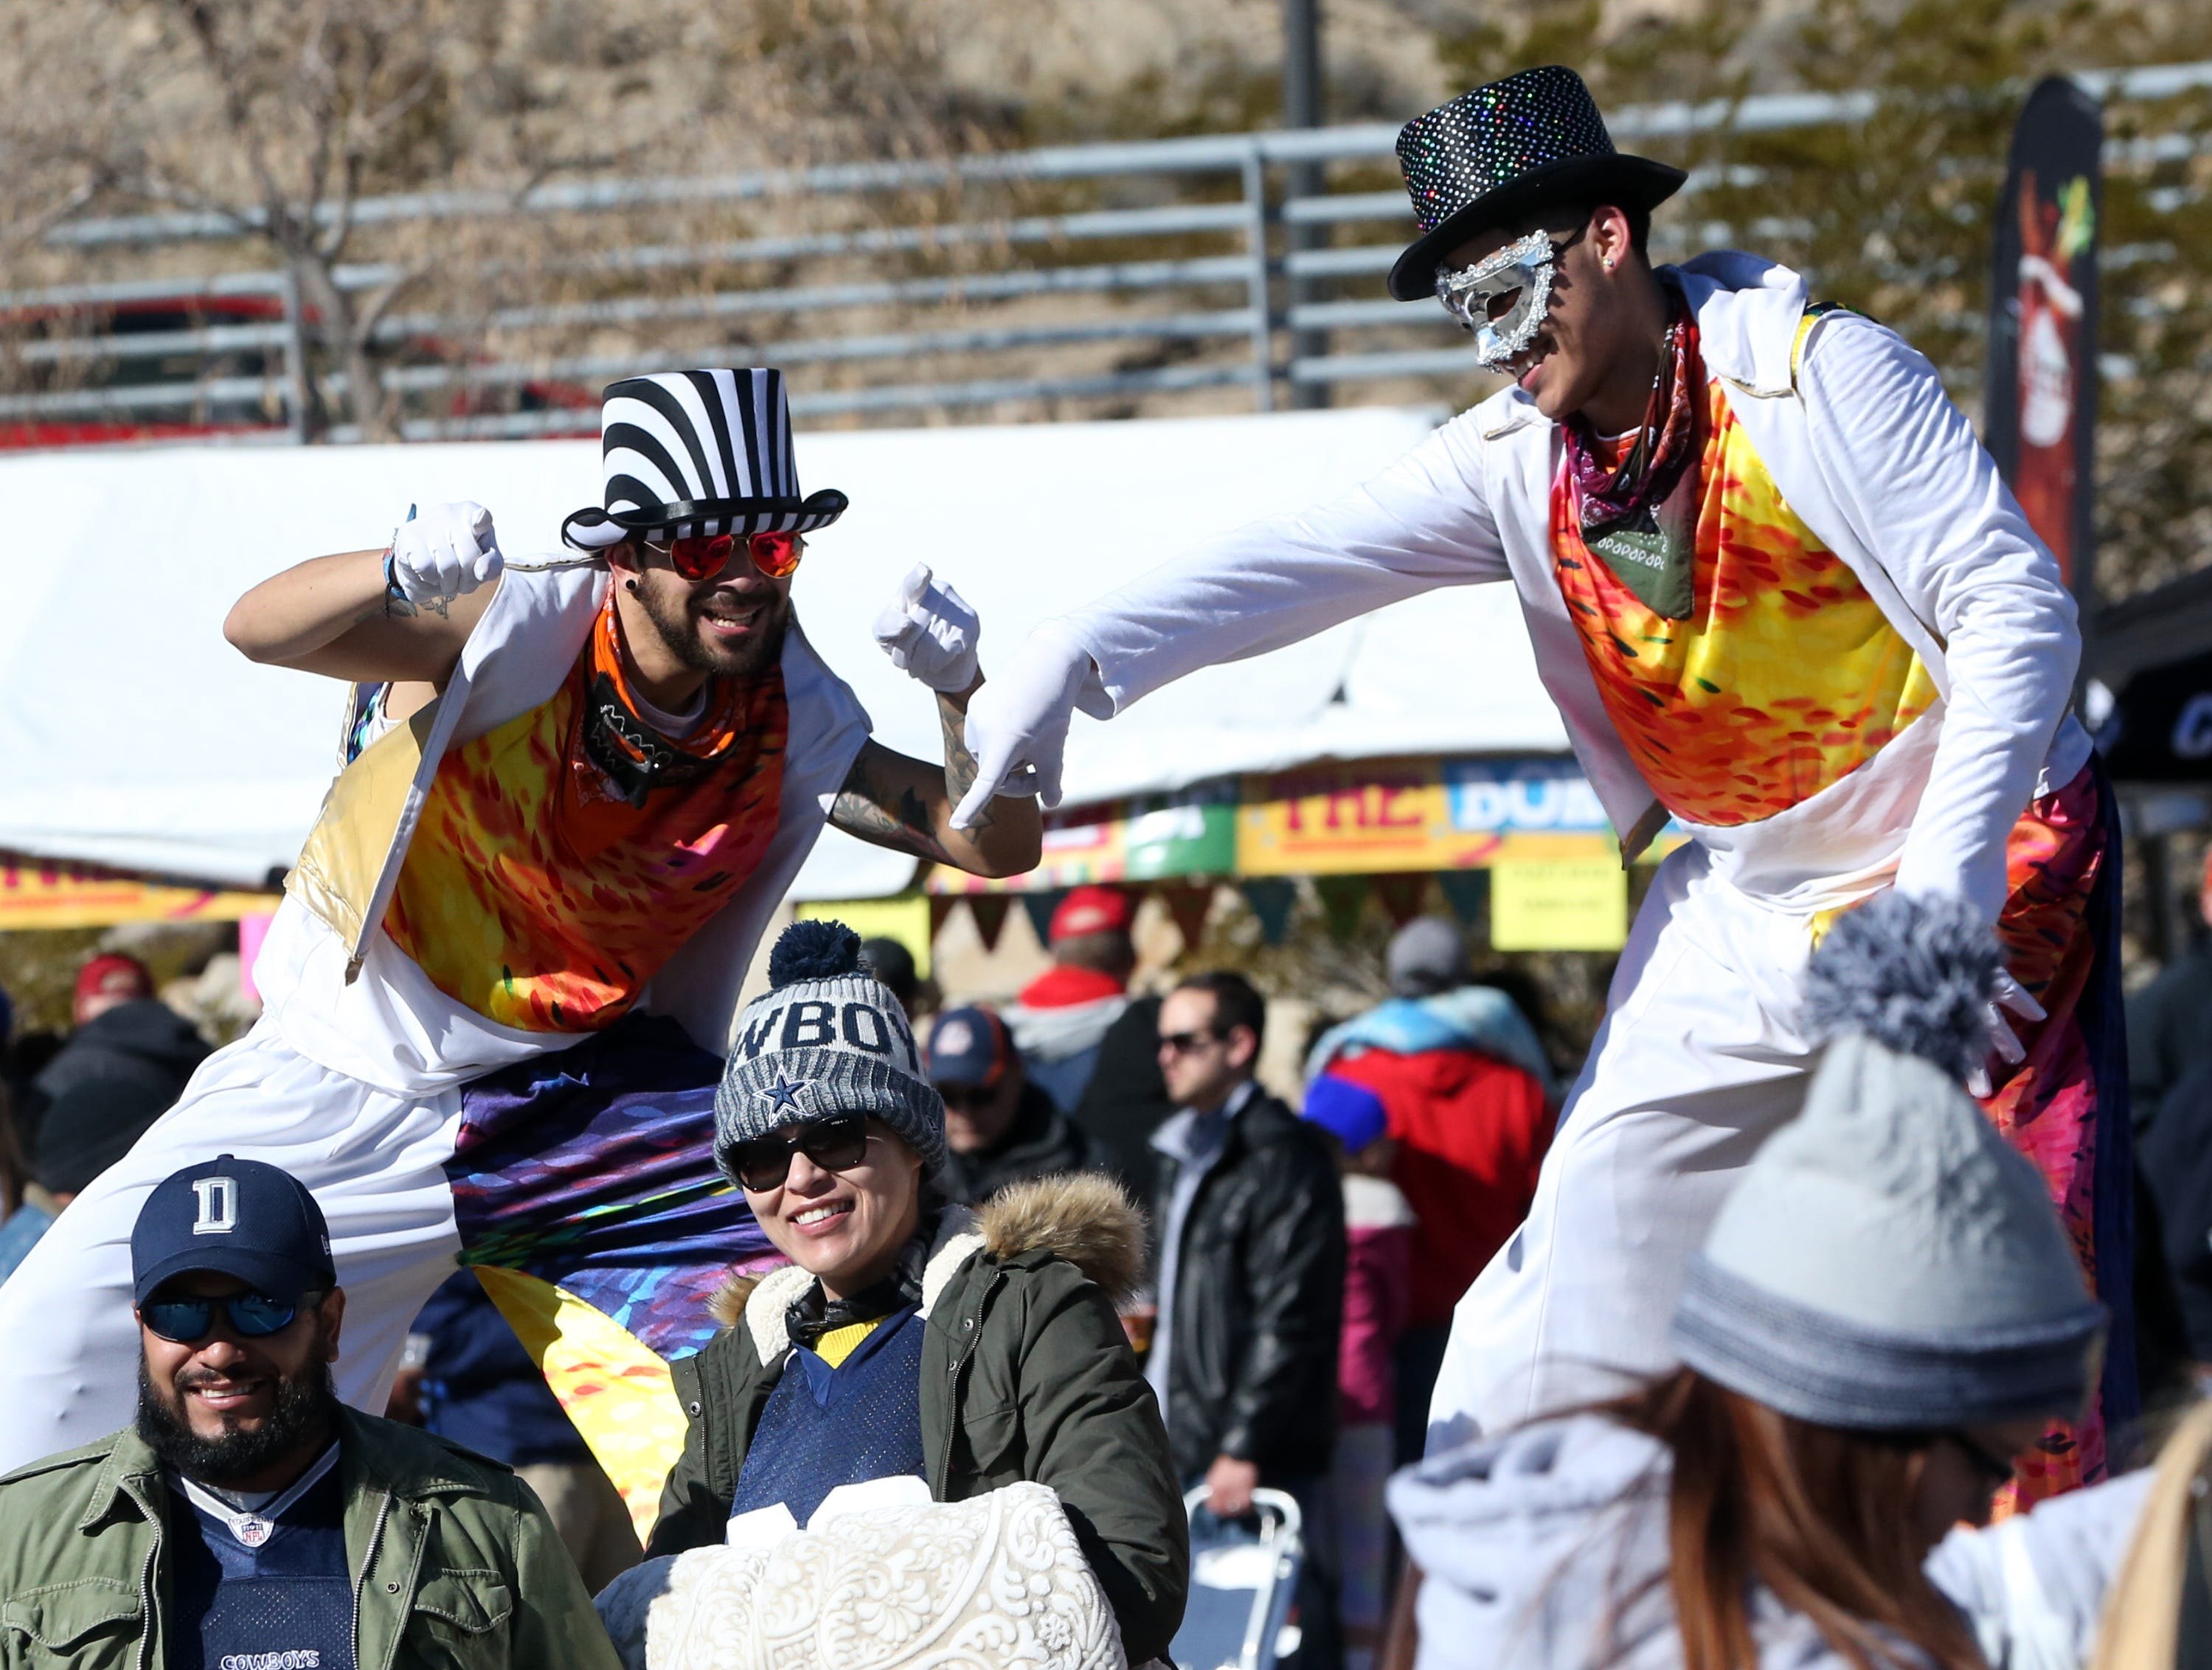 People on stilts greet fans at a pre-game party on the North end of the Sun Bowl Stadium Monday.